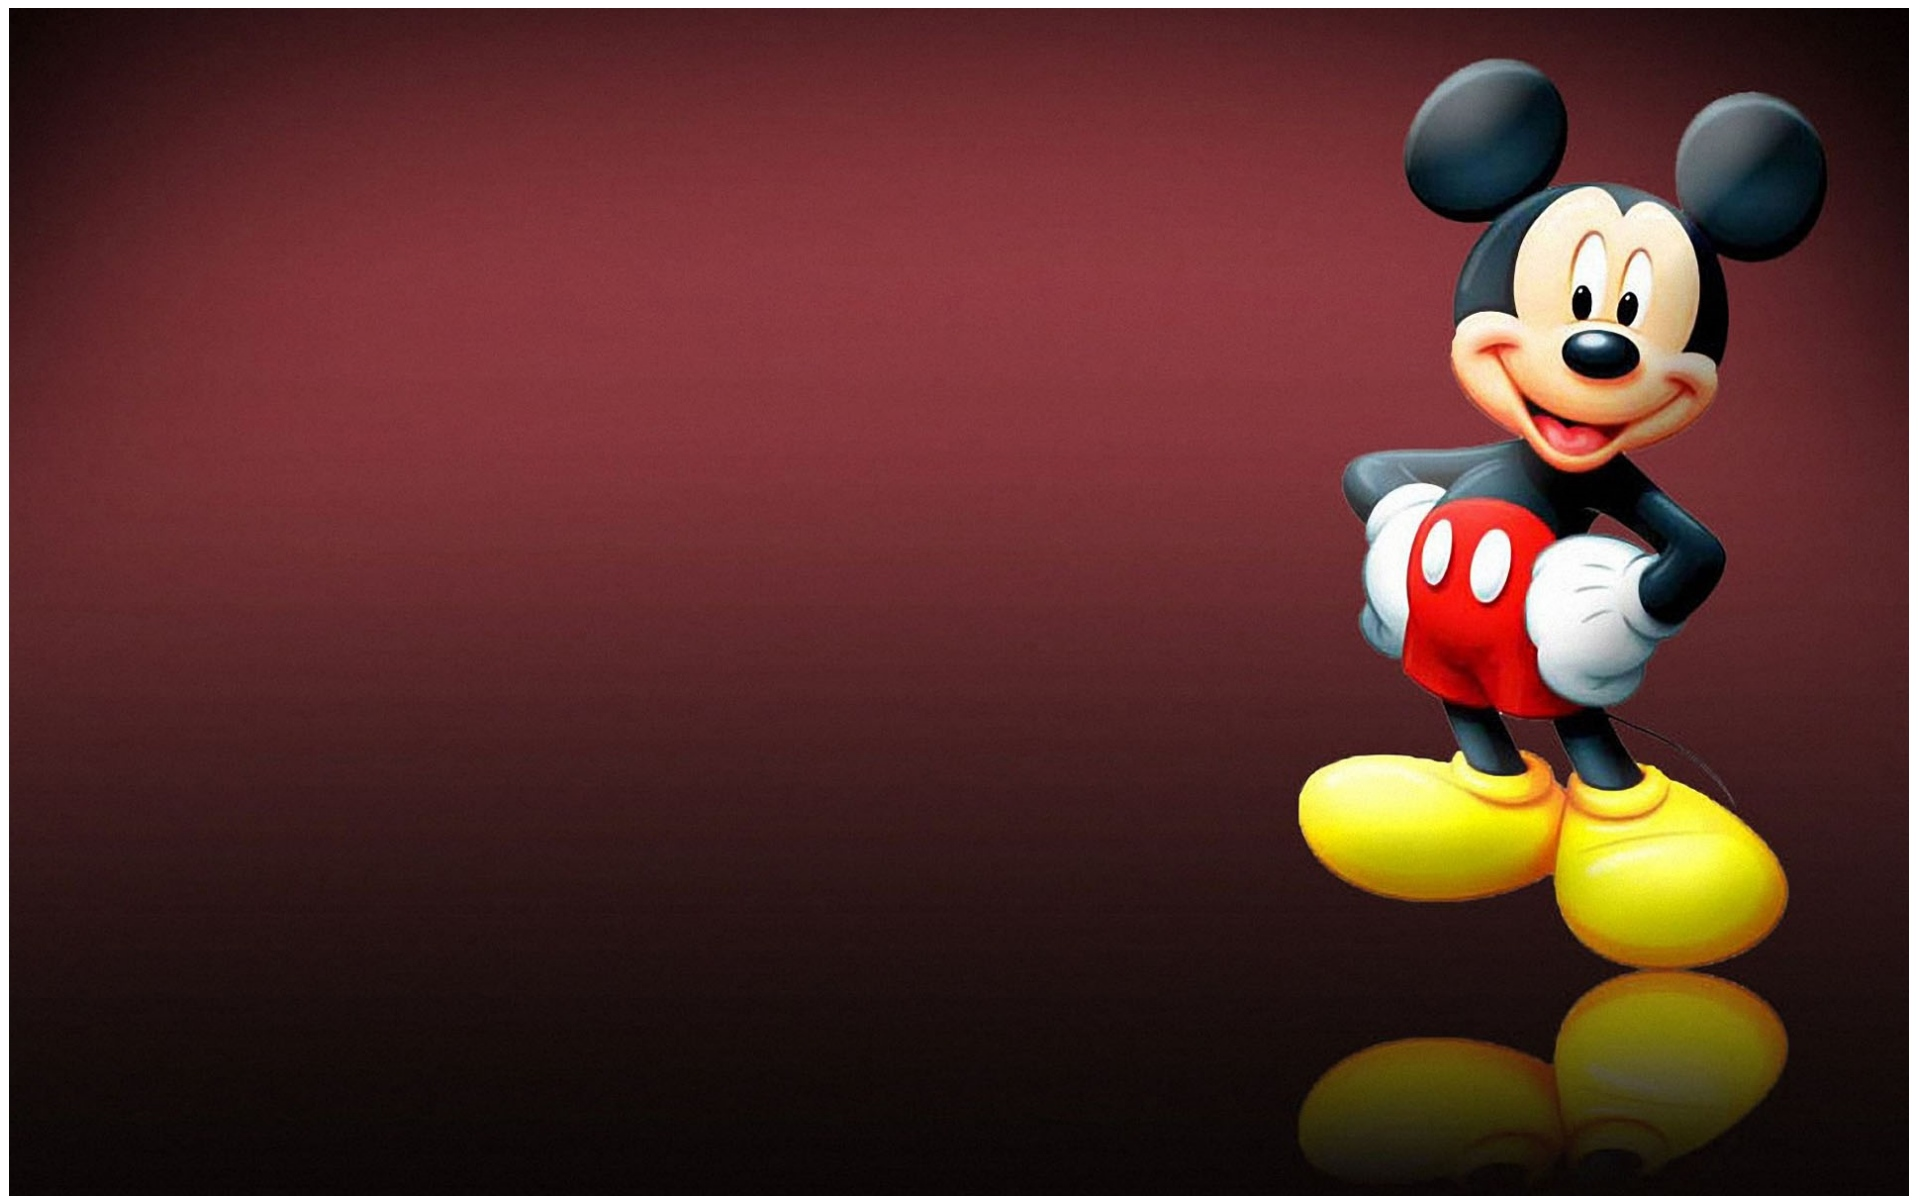 mickey mouse wallpaper free download for mobile » Wallppapers Gallery 1918x1204